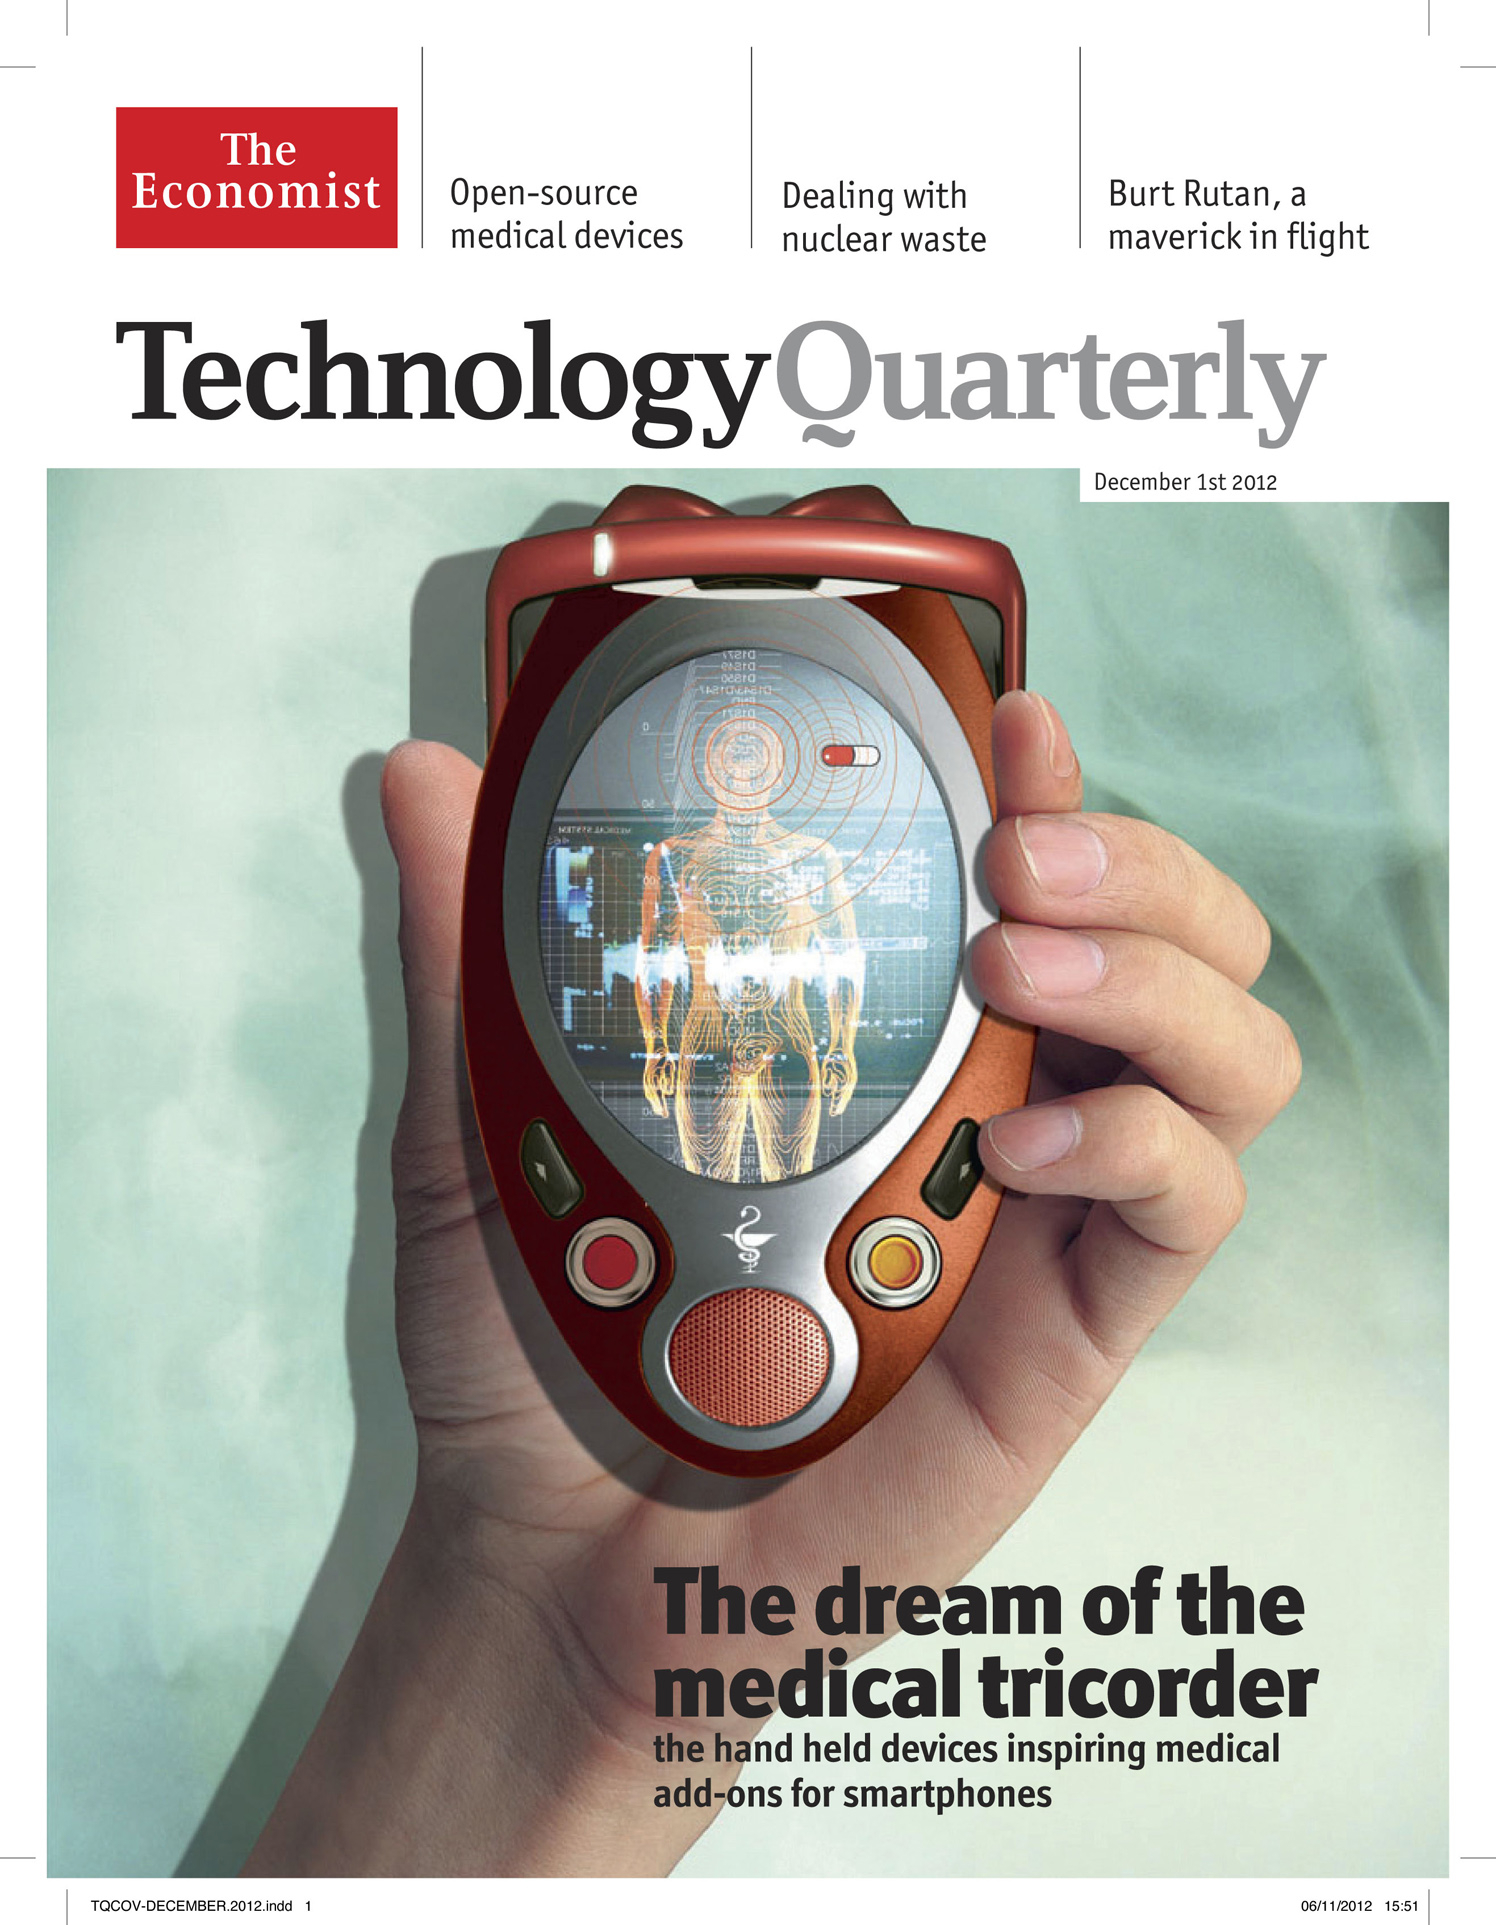 The Dream Of The Medical Tricoder / The Economist